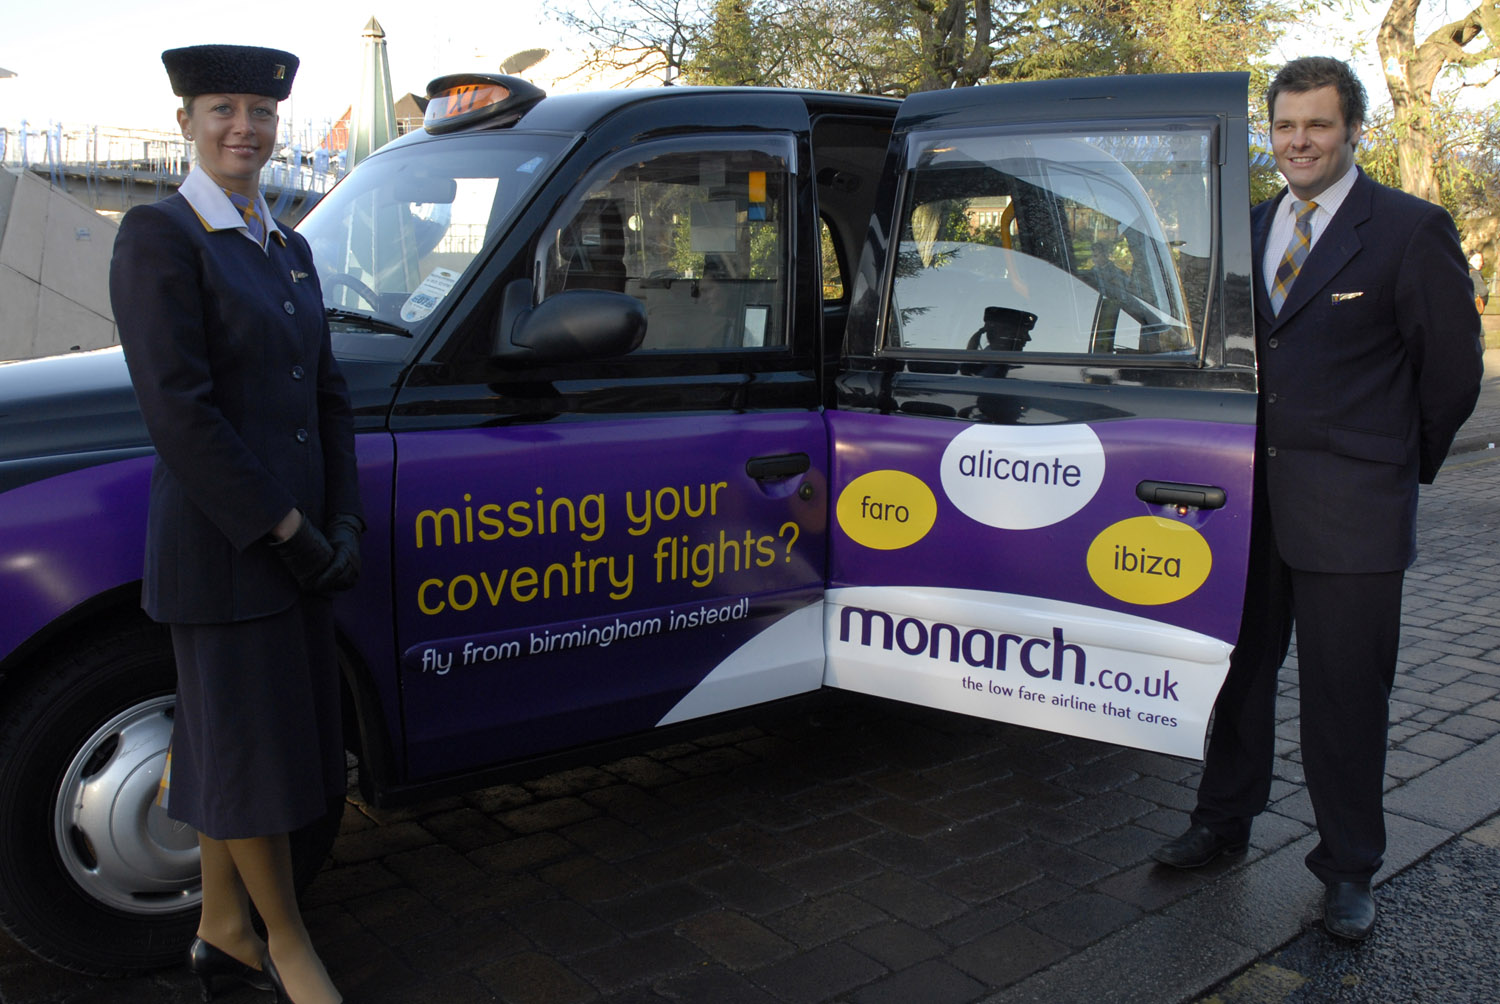 2008 Ubiquitous taxi advertising campaign for Monarch - The low fare airline that cares